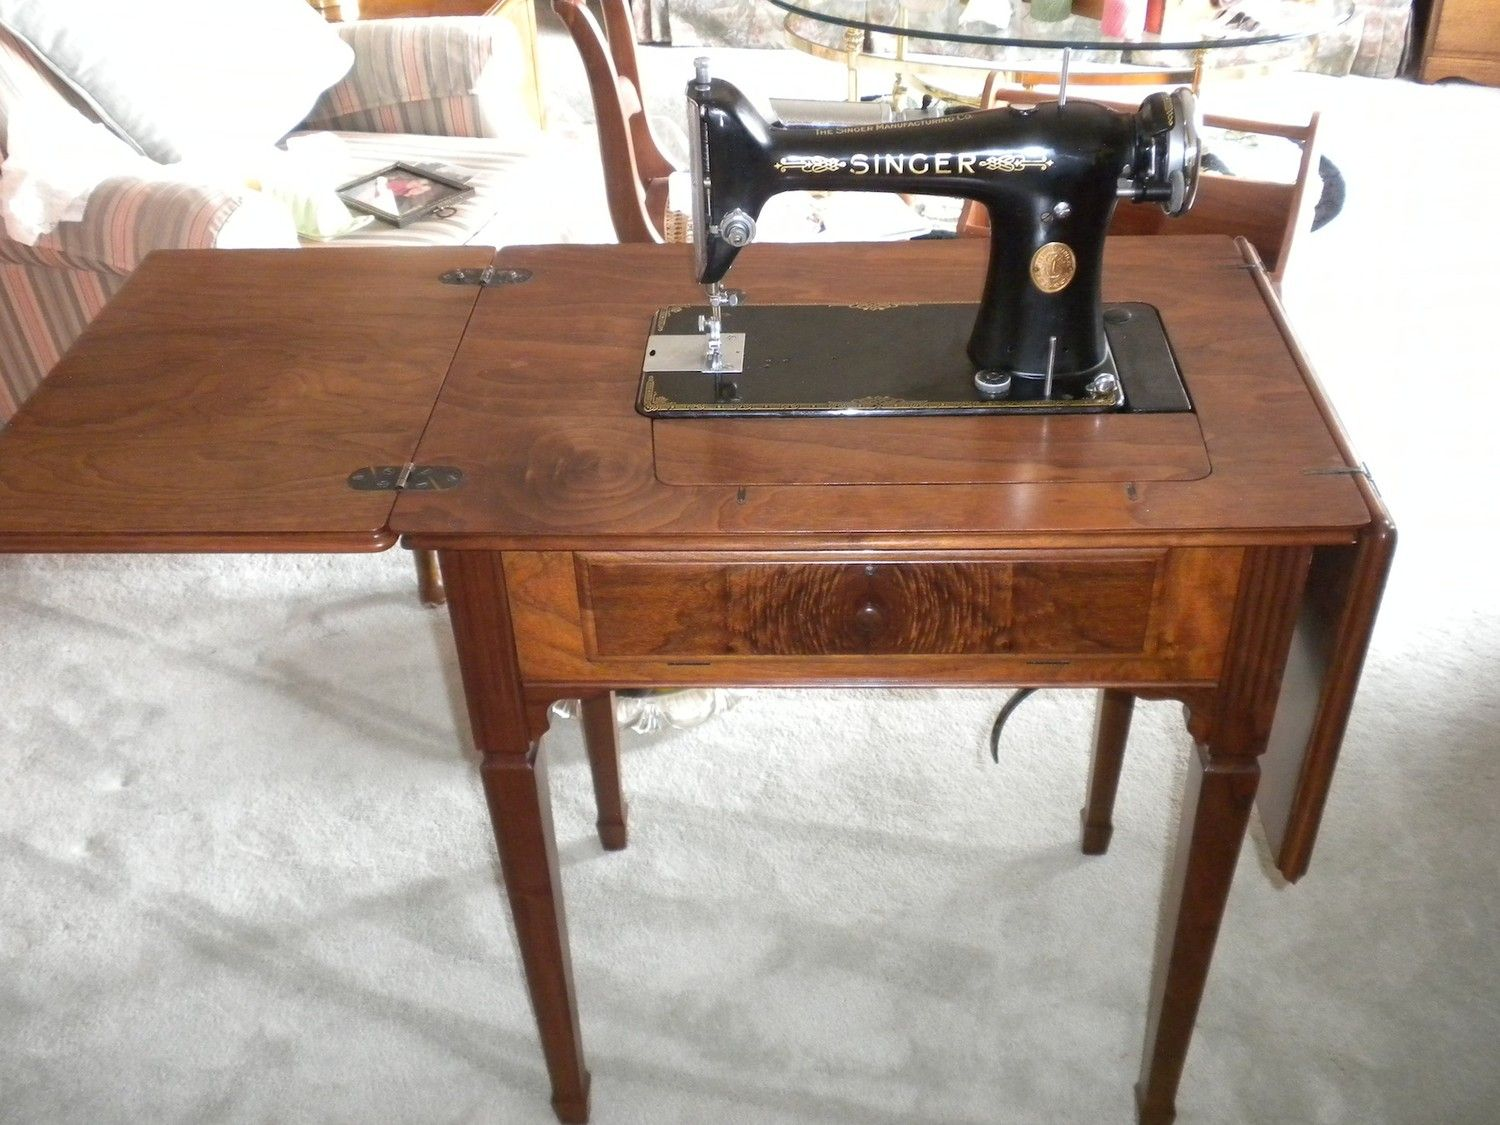 Knee pedal sewing machine cabinet bath vanity google search explore singer sewing machines and more watchthetrailerfo